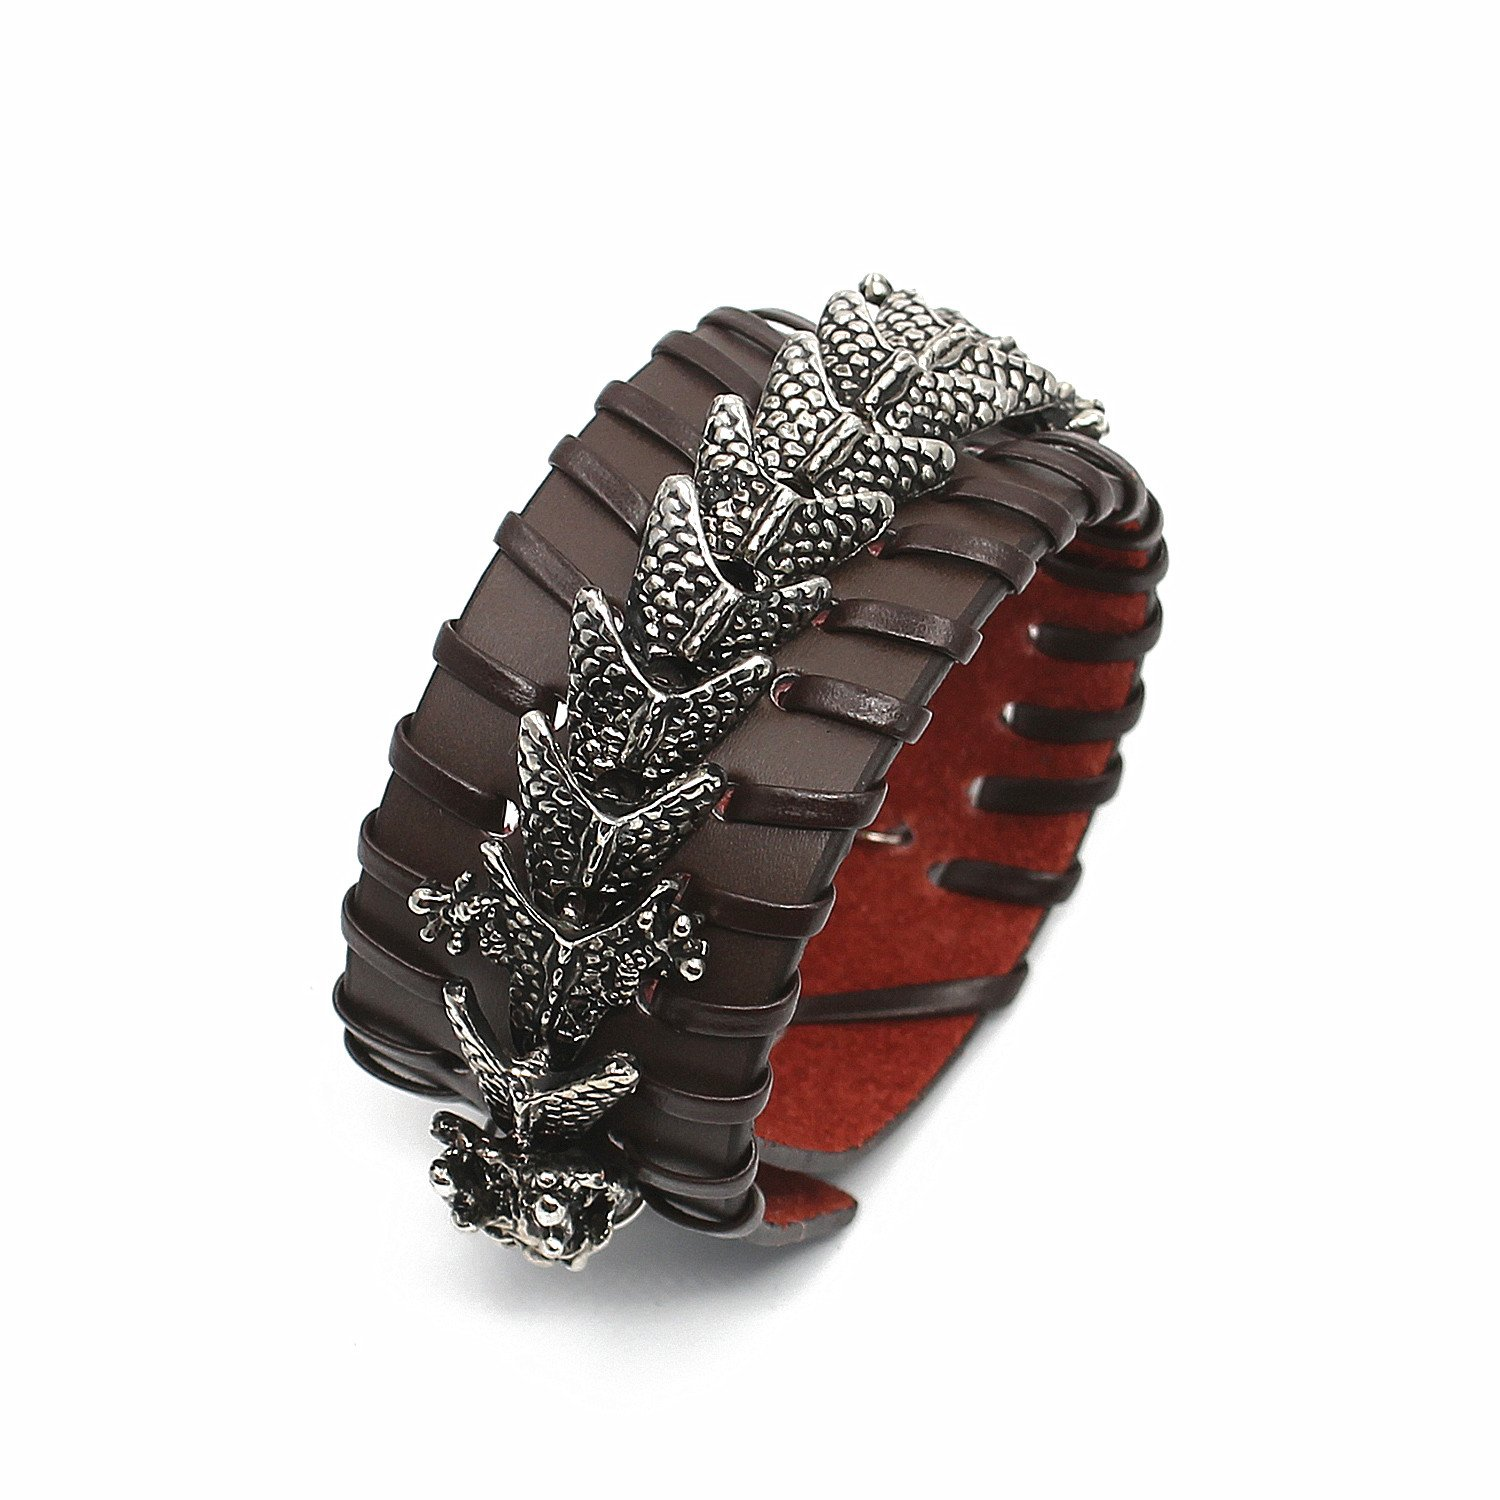 Holattio Mens Dragon Punk Rock Alloy Genuine Leather Belt Leather Bracelet Cuff Adjustable by Holattio